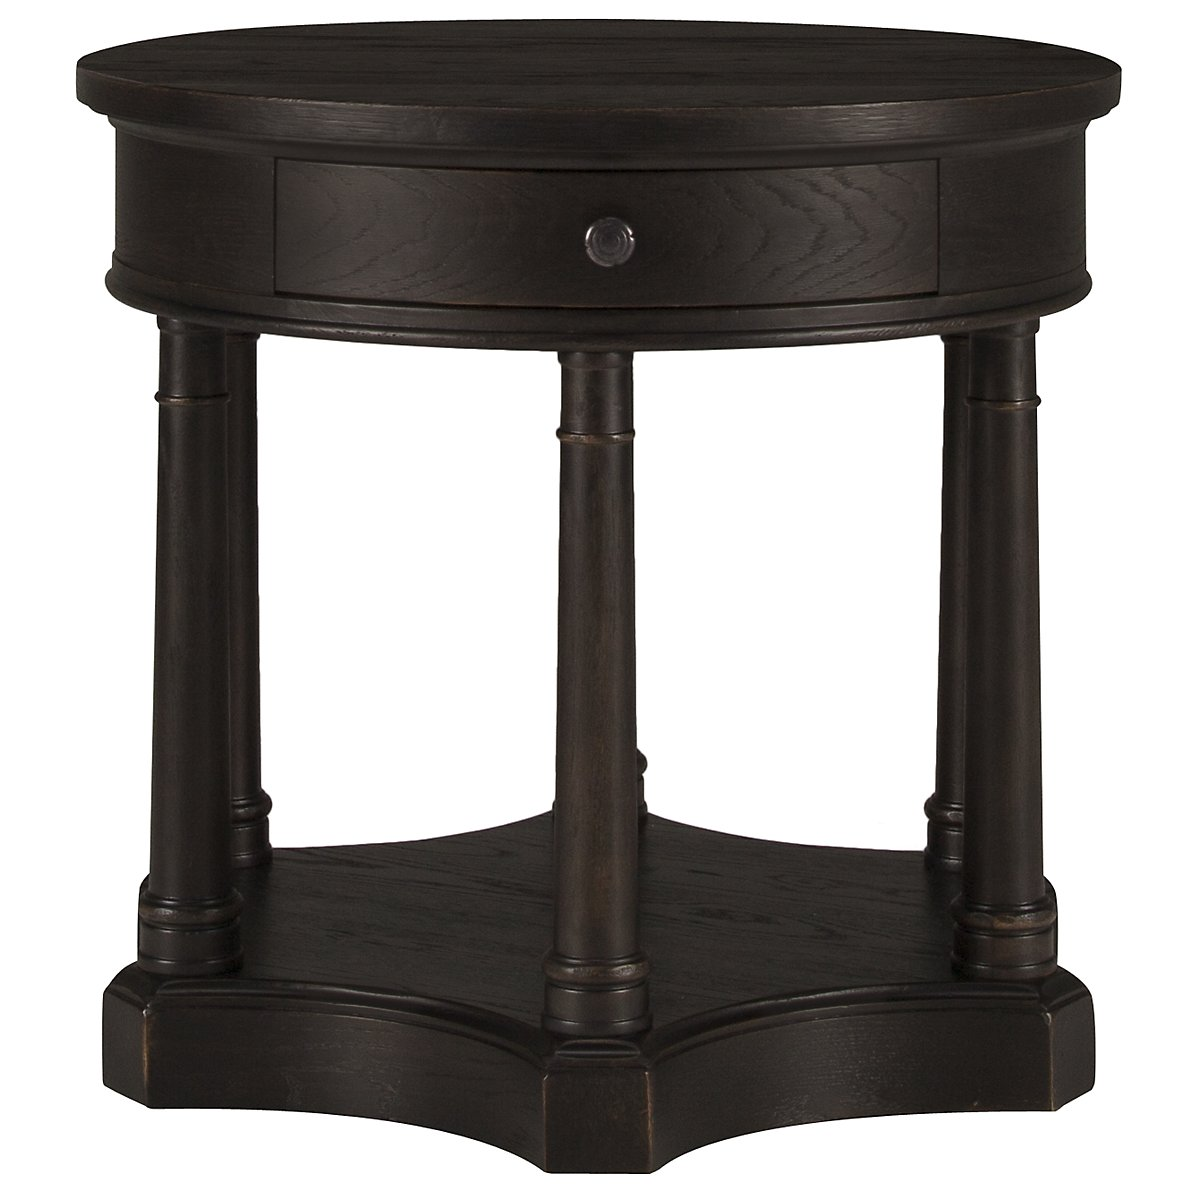 Belgian Oak Dark Tone Wood Round End Table